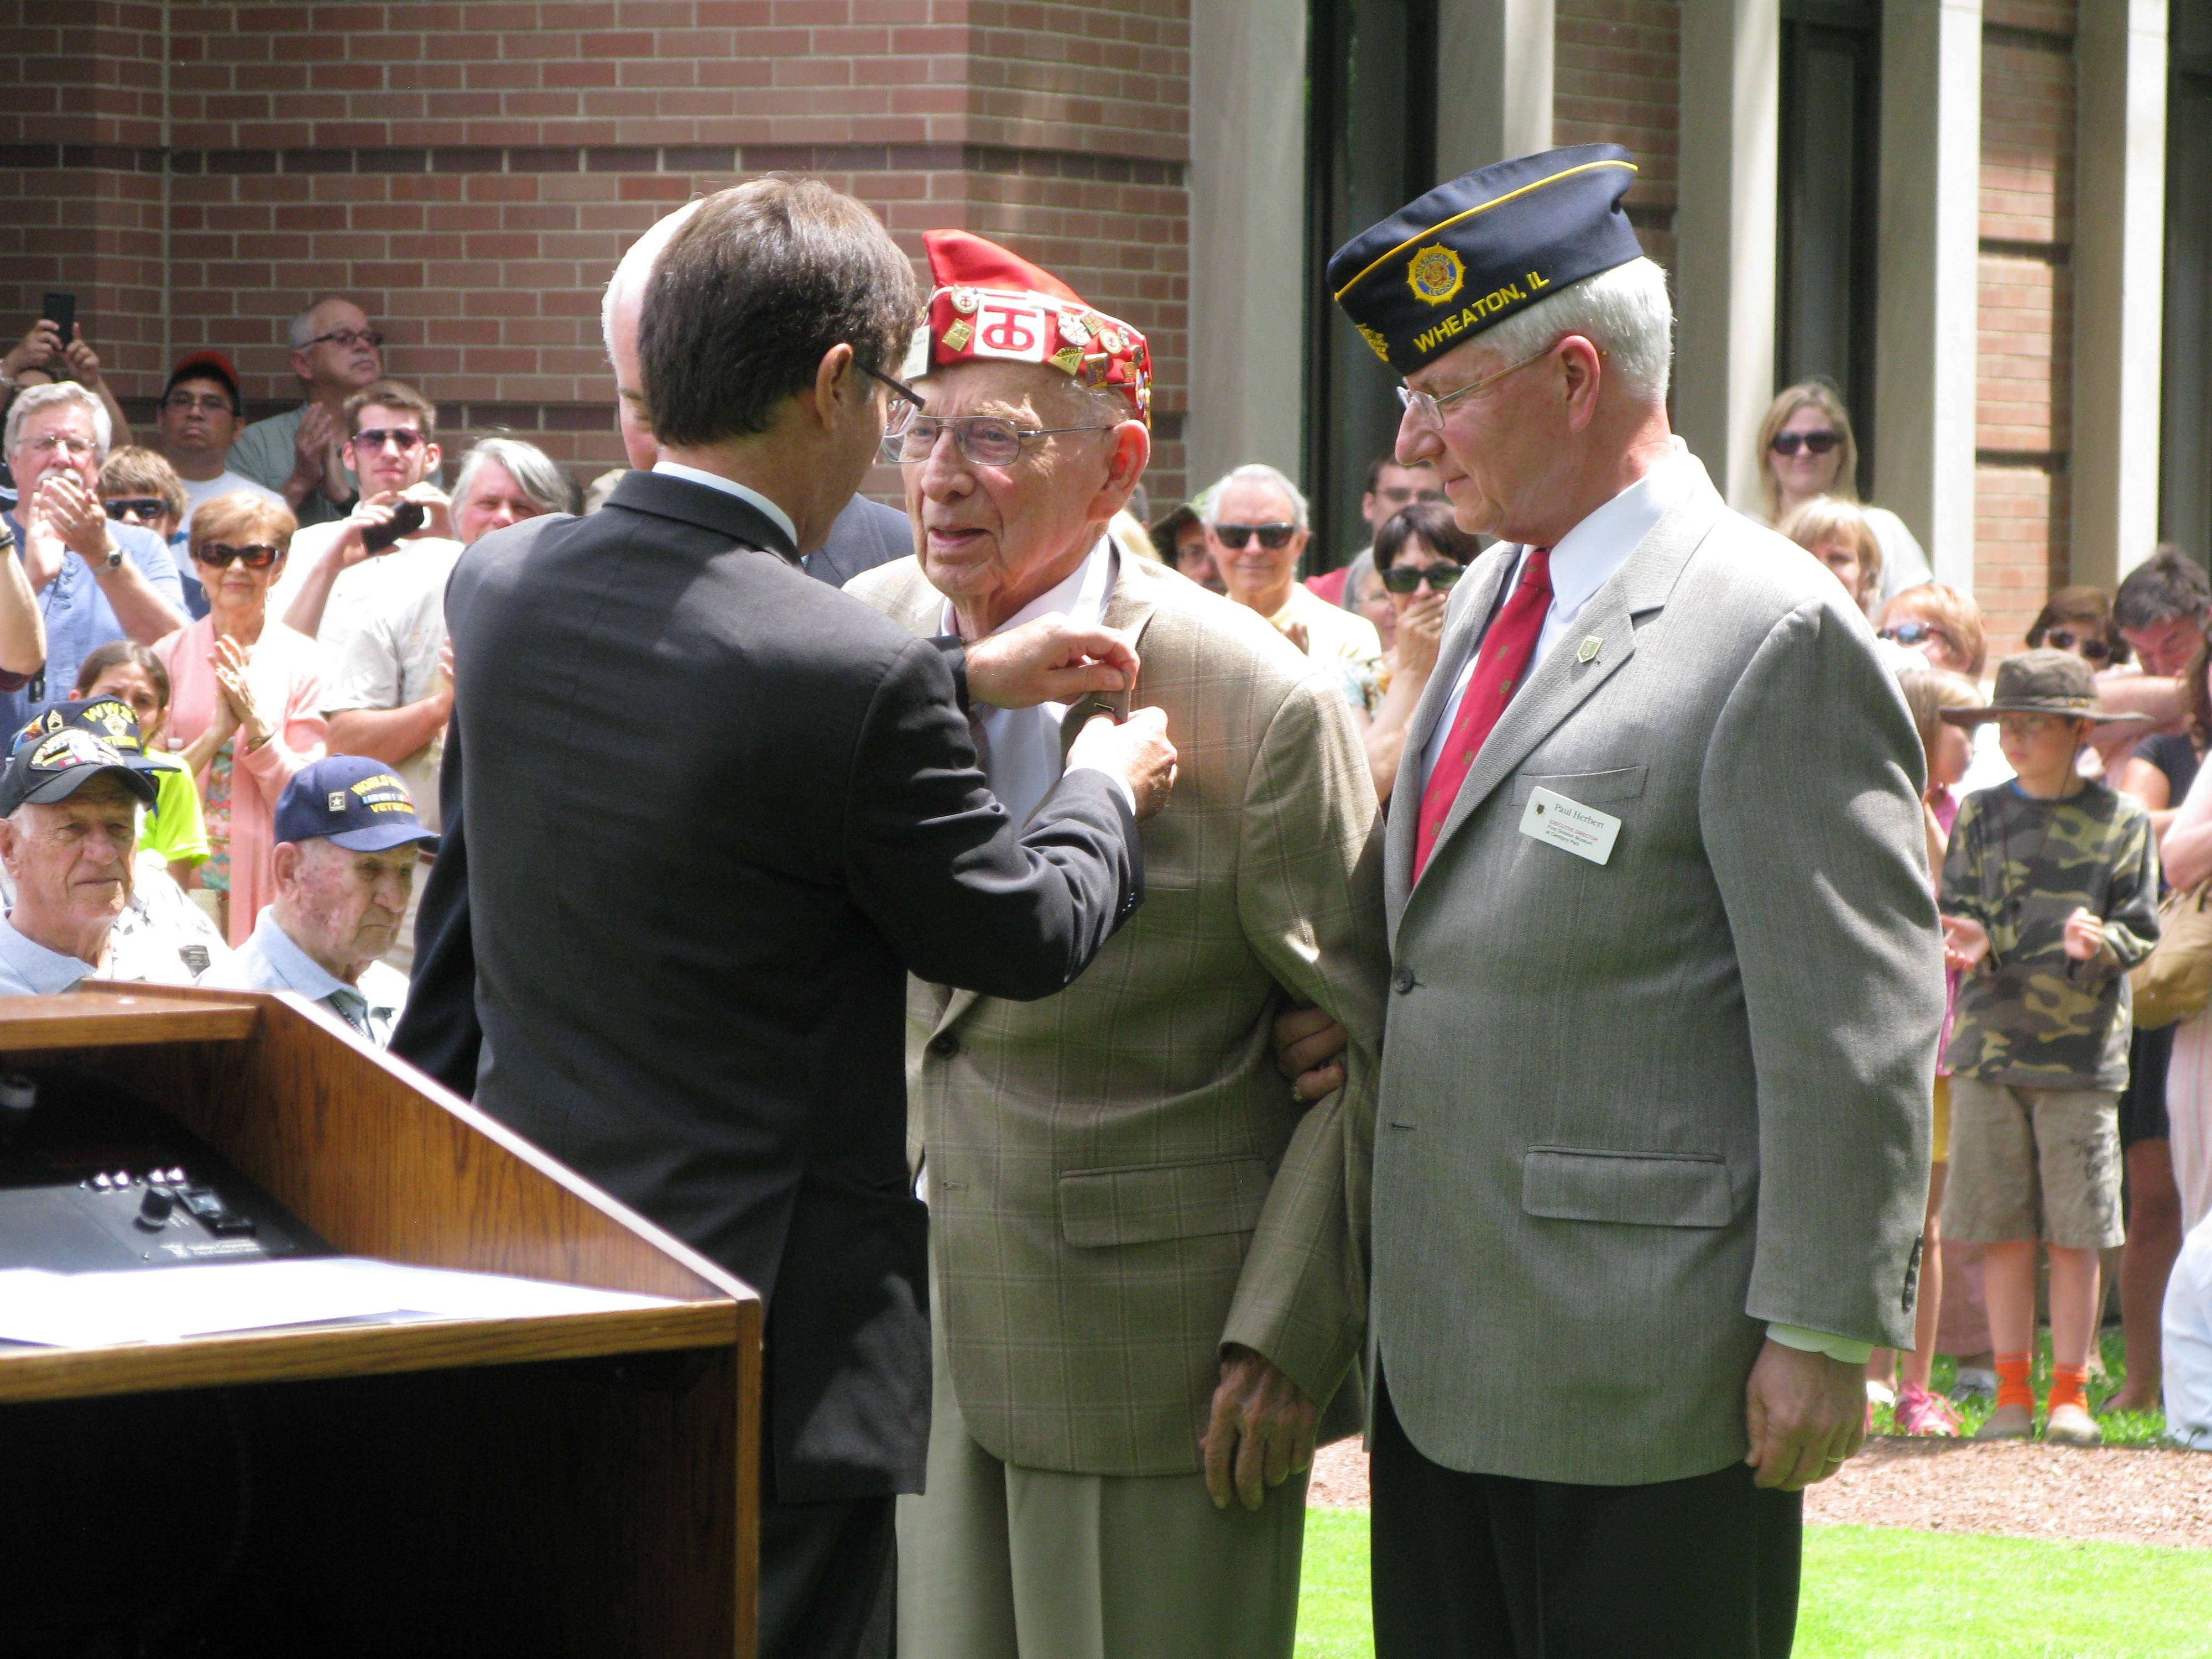 James Reid of Oak Brook, center, receives the French Legion of Honor medal Saturday from Graham Paul, consul general of France to Chicago, during the 70th anniversary commemoration of D-Day at Cantigny Park in Wheaton. To his right stands Paul Herbert, director of the First Division Museum at Cantigny.